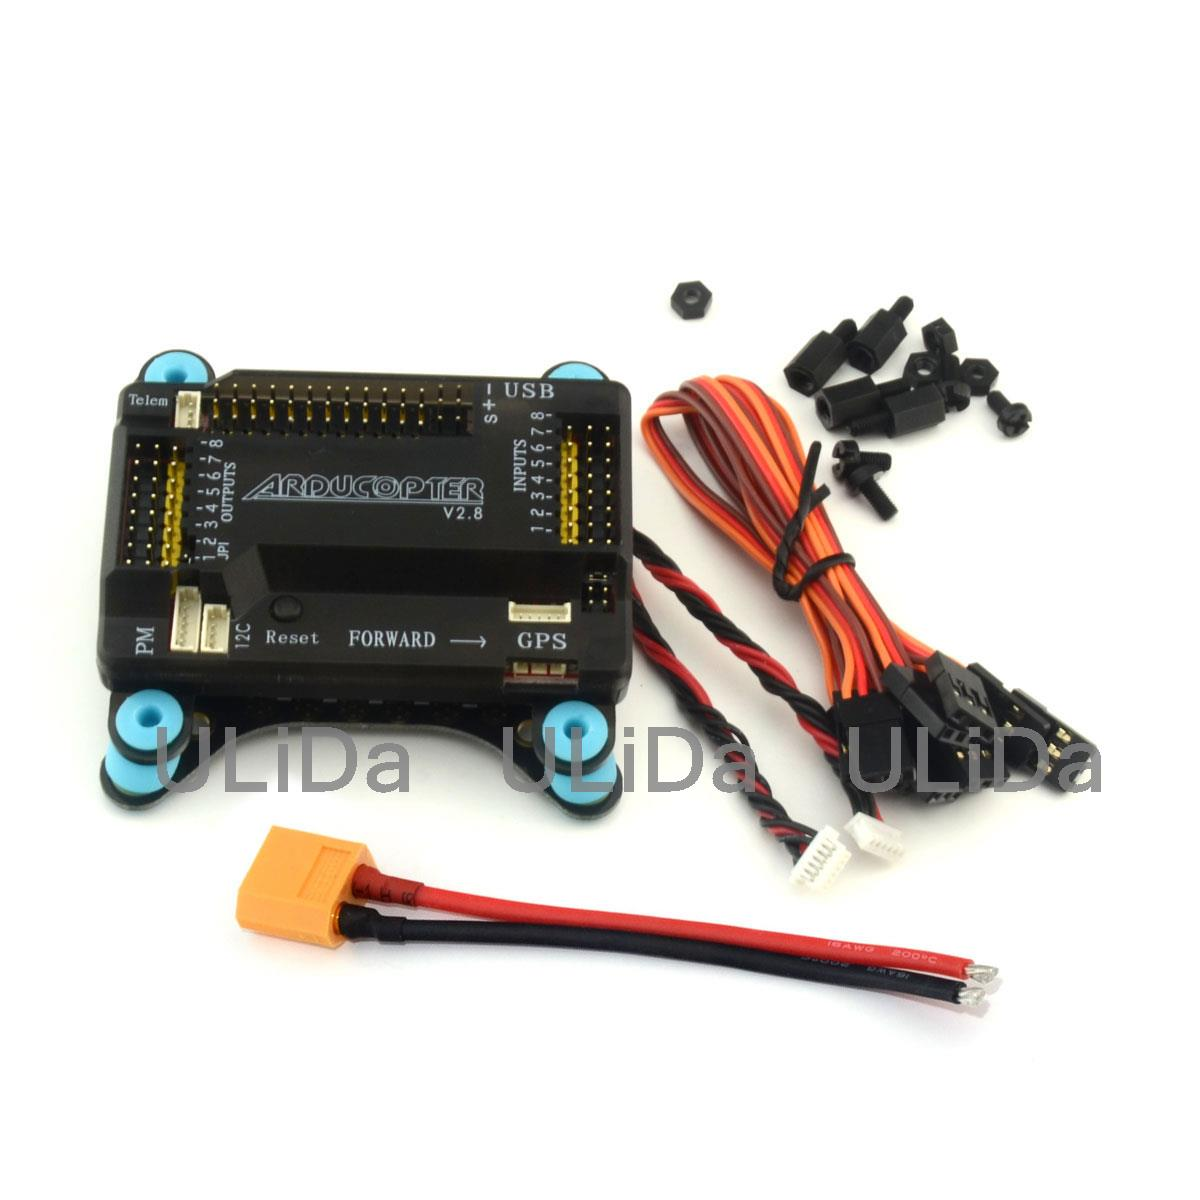 5in1 APM 2.8 Flight Controller /w Shock Absorber Integrate Power LED ESC 5V 12V BEC Distribution Board for Quadcopter 2017 special offer rushed esc value 2 hsp fpv tamiya fiber flight controller anti vibration set shock absorber apm kk mwc